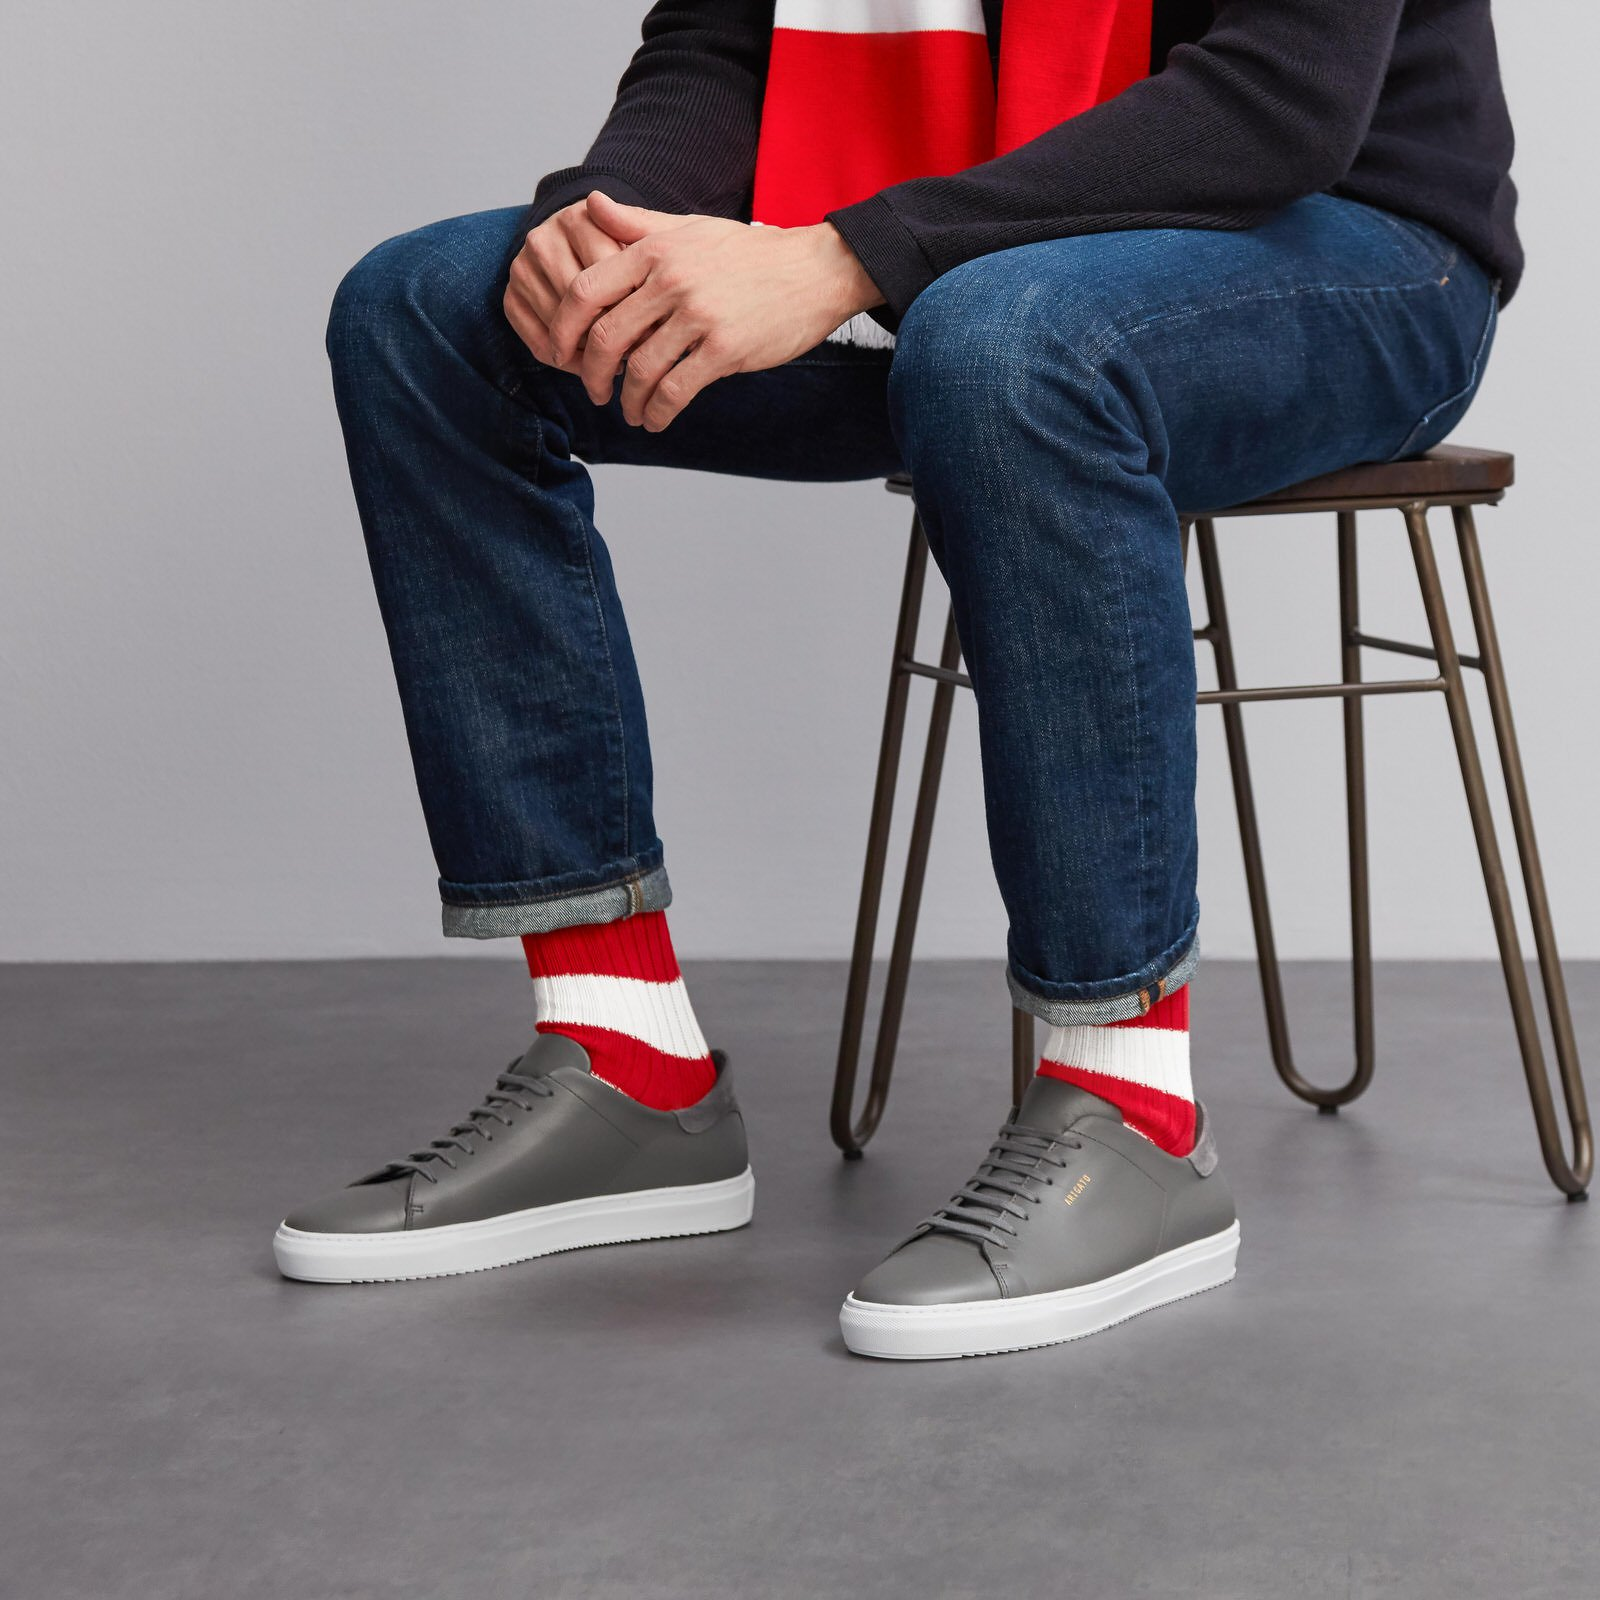 EXCLUSIVE FREE Socks Offer From The London Sock Company